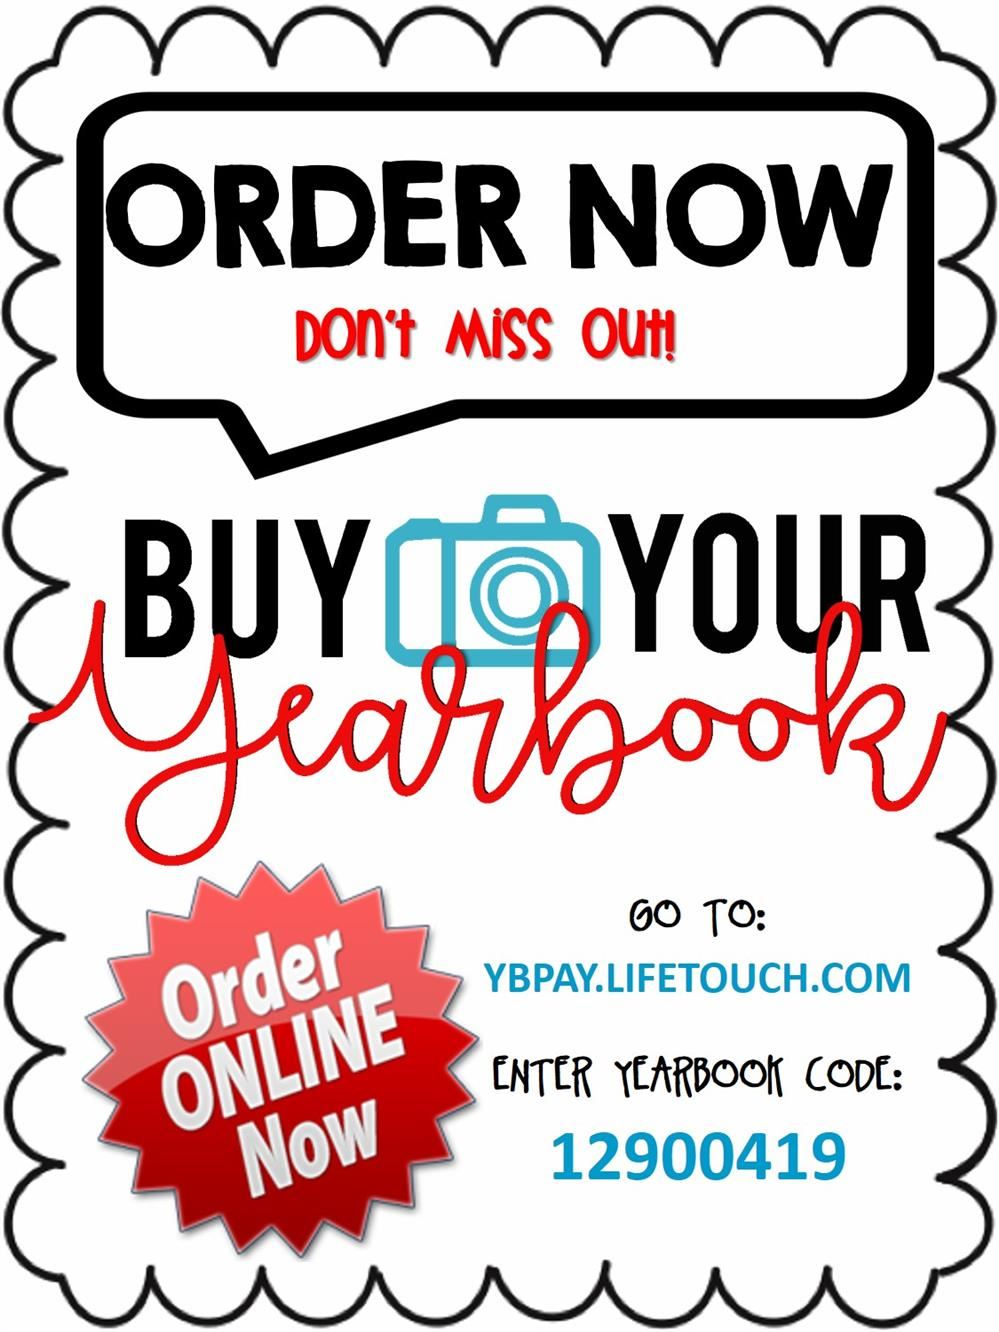 YEARBOOK ORDERS - Be sure to place your yearbook order soon so you don't miss out!  We have a limited amount of copies in our order!  Reserve your copy today!  Online Orders Only!